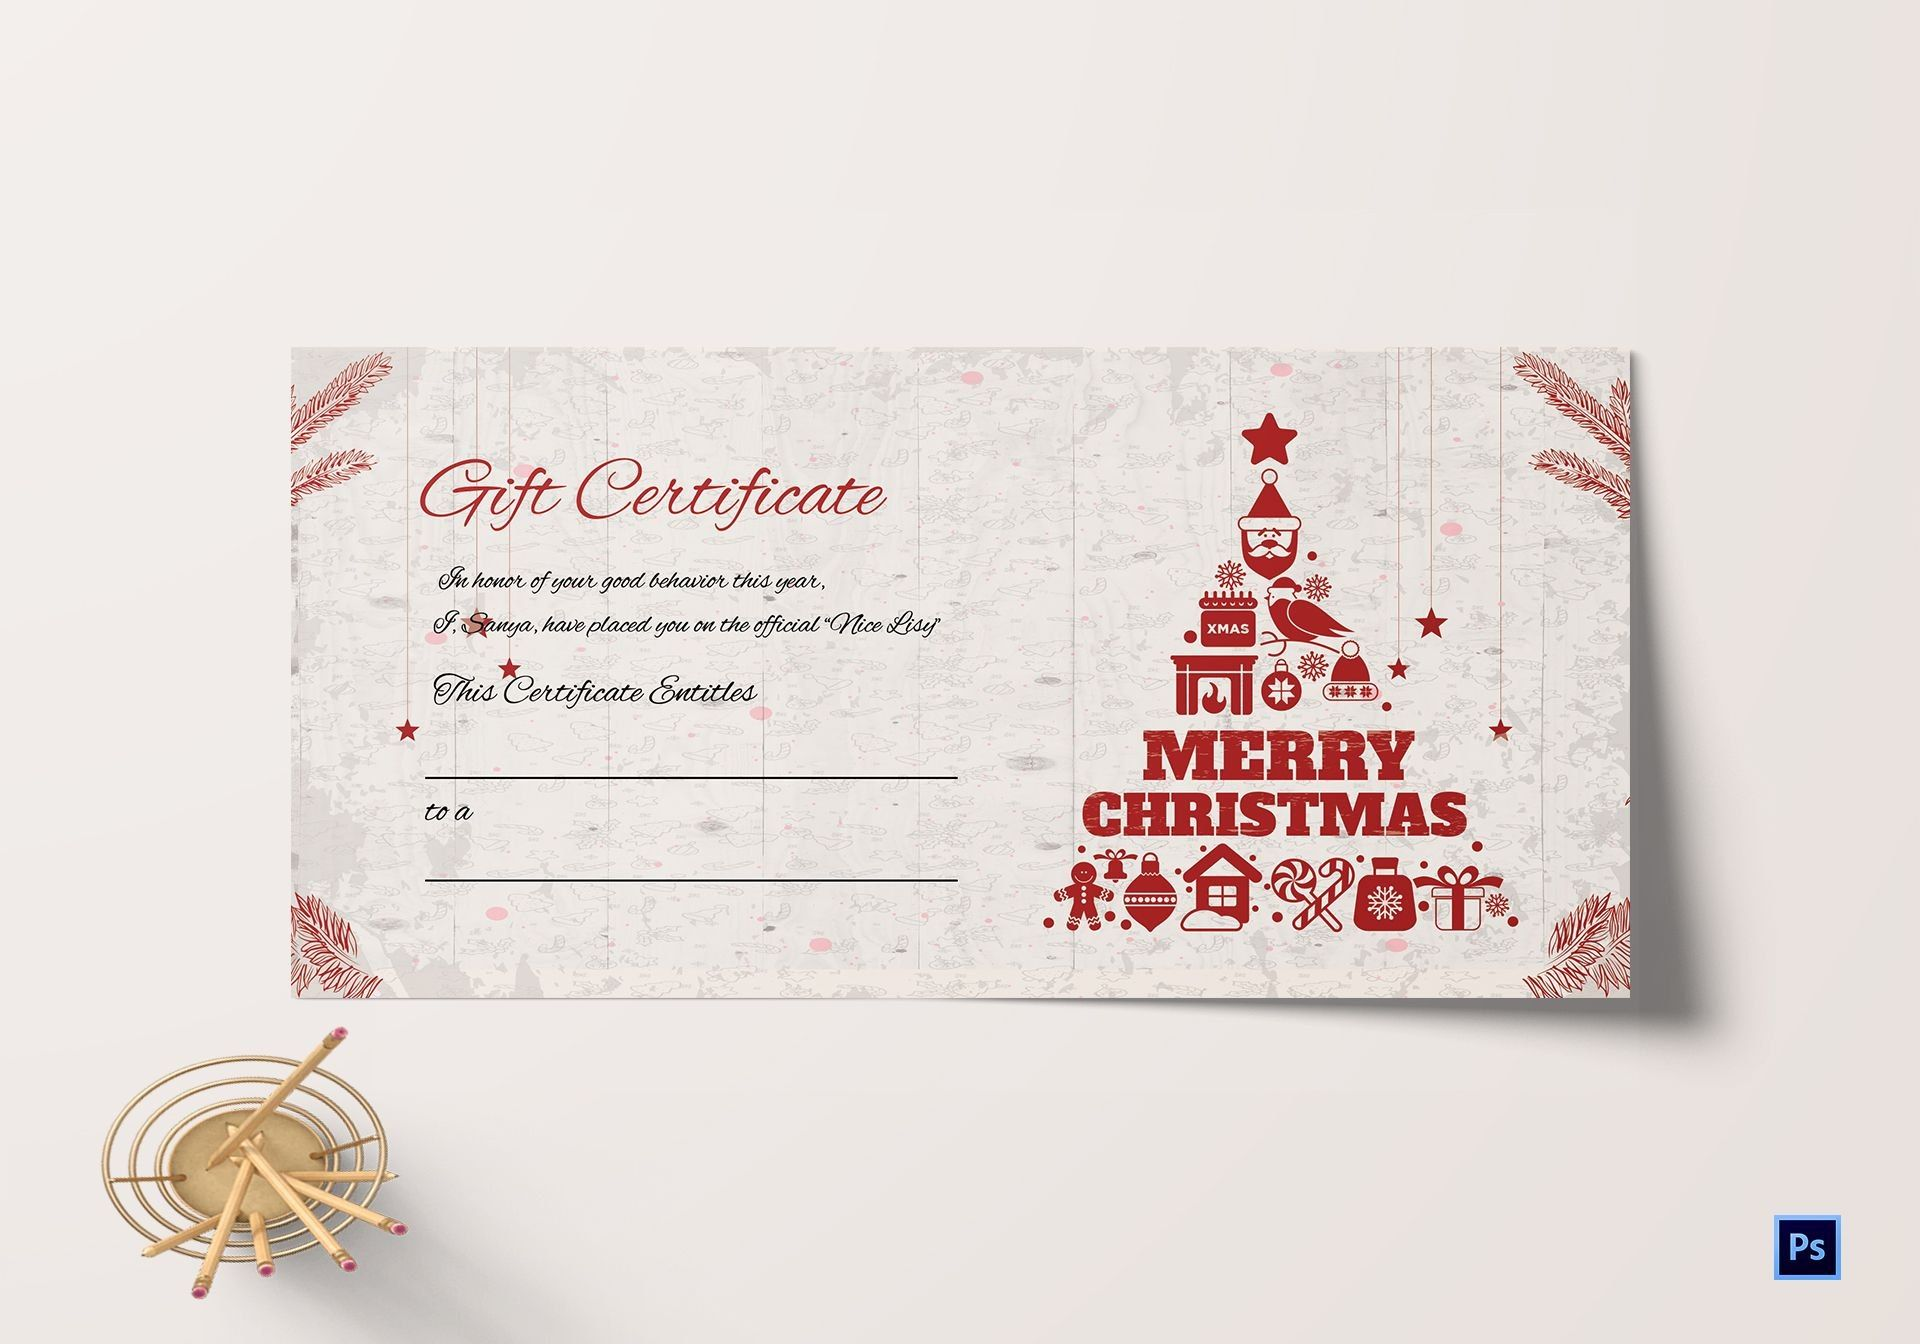 Merry Christmas Gift Certificate Template In Adobe Photoshop With Rega Christmas Gift Certificate Christmas Gift Certificate Template Gift Certificate Template